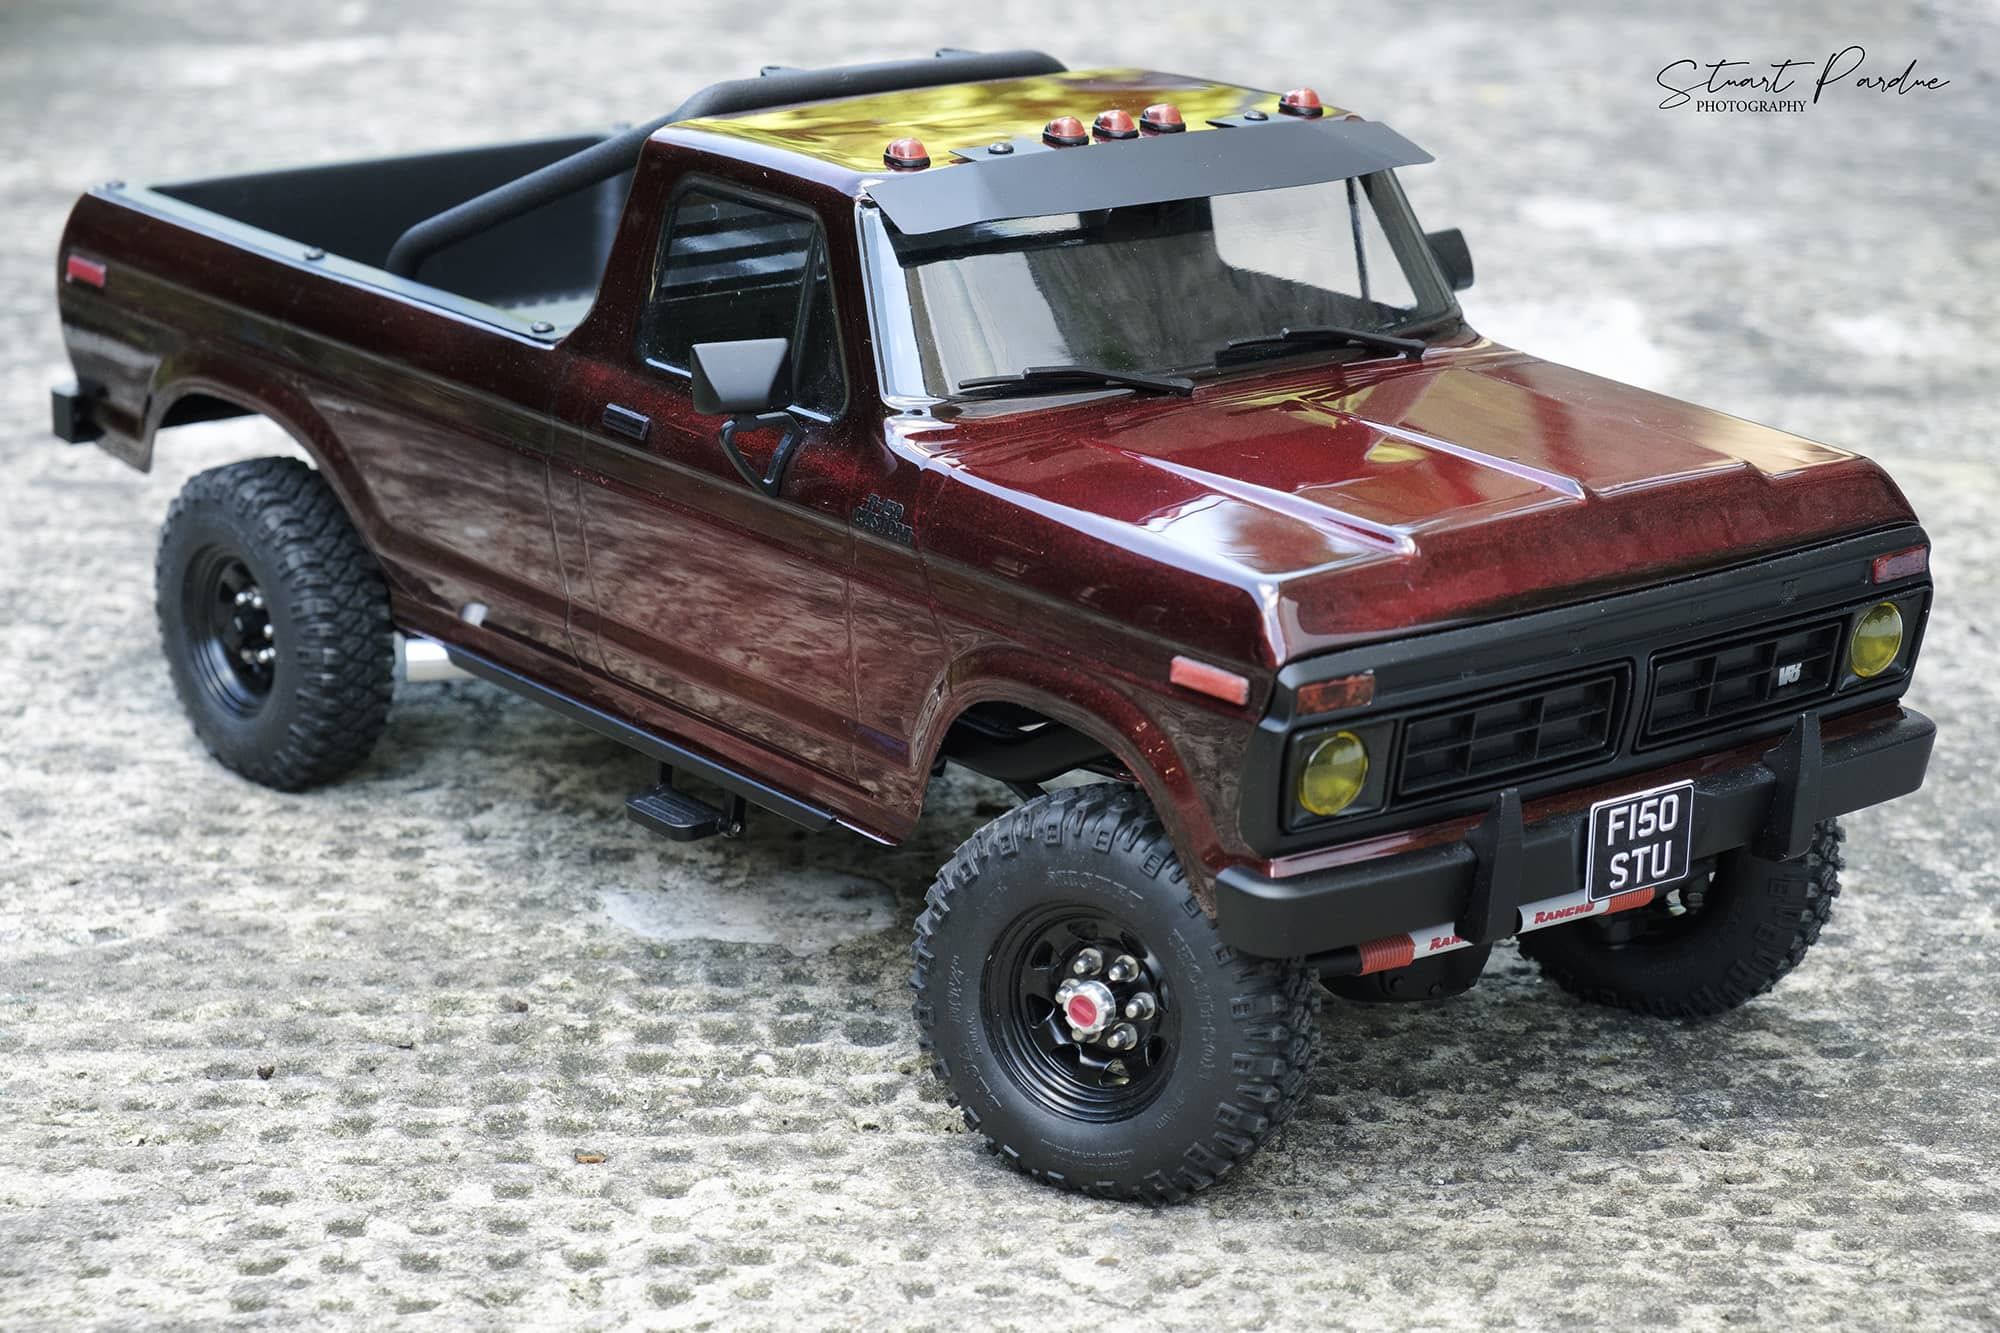 From Stock to Stunner: Stuart Pardue's Carisma Scale Adventure Custom SCA-1E Ford F-150